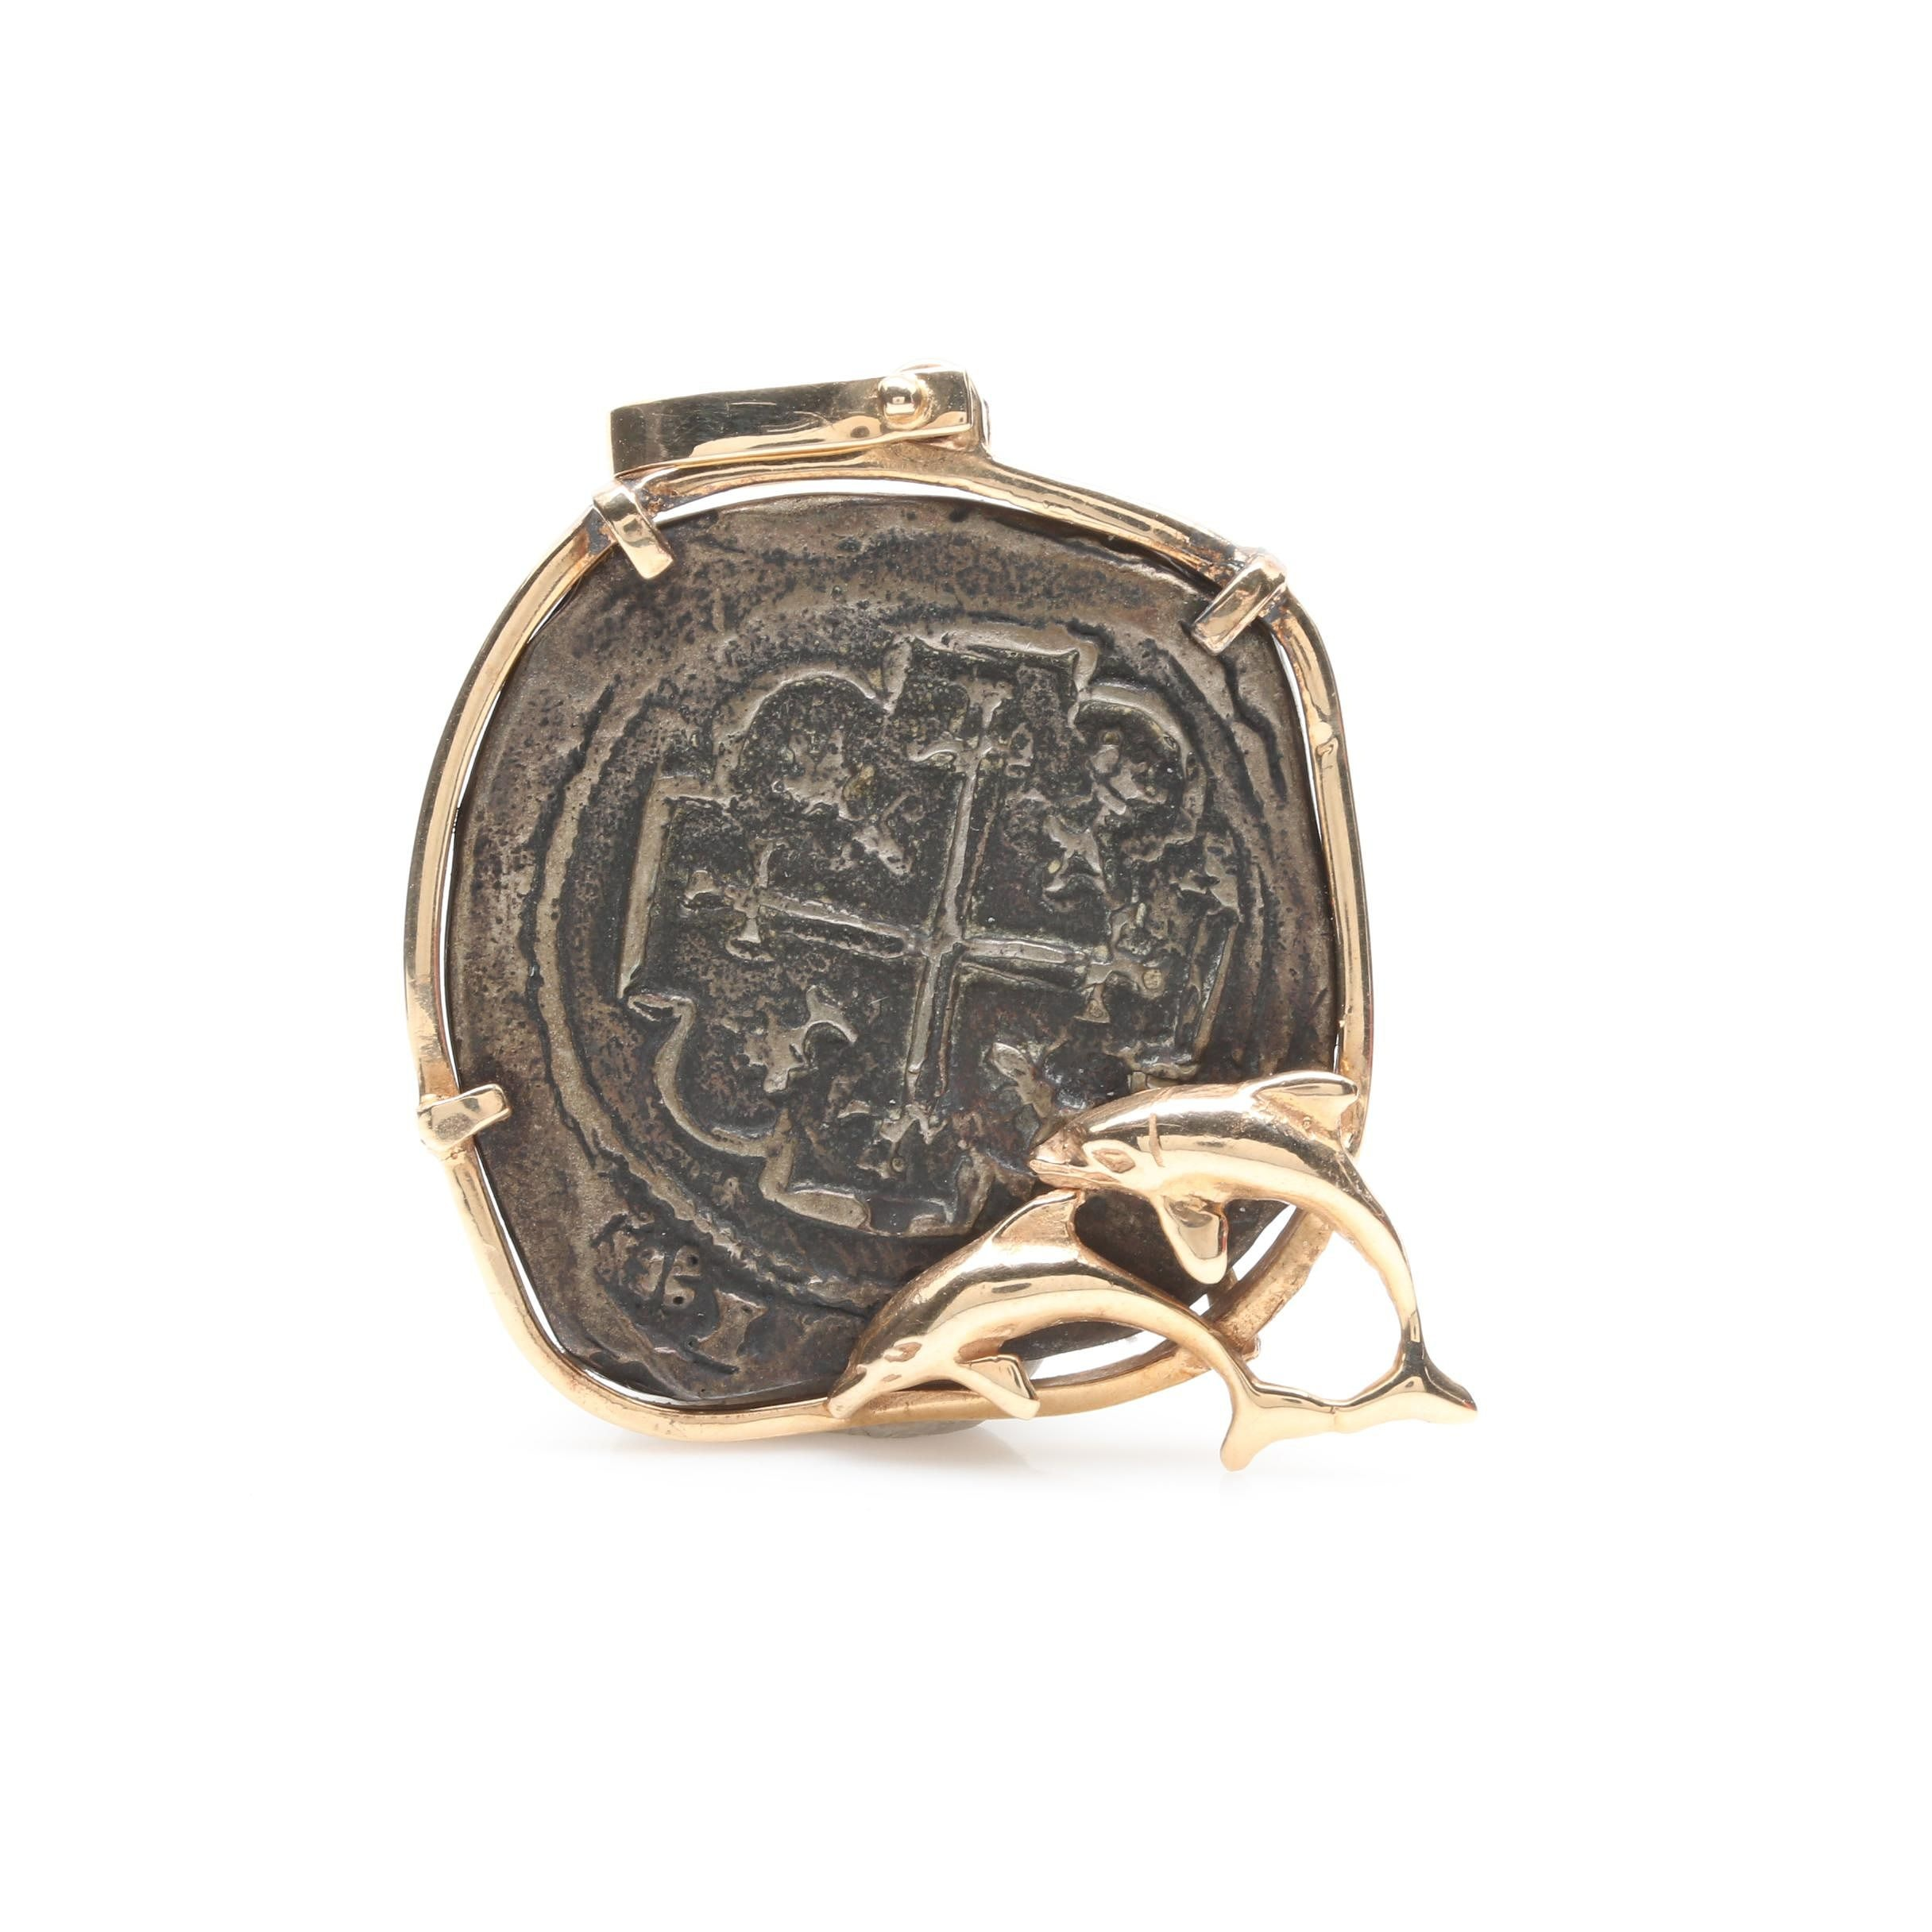 14K Yellow Gold and 850 Silver Colonial Spanish Cob Replica Coin Pendant